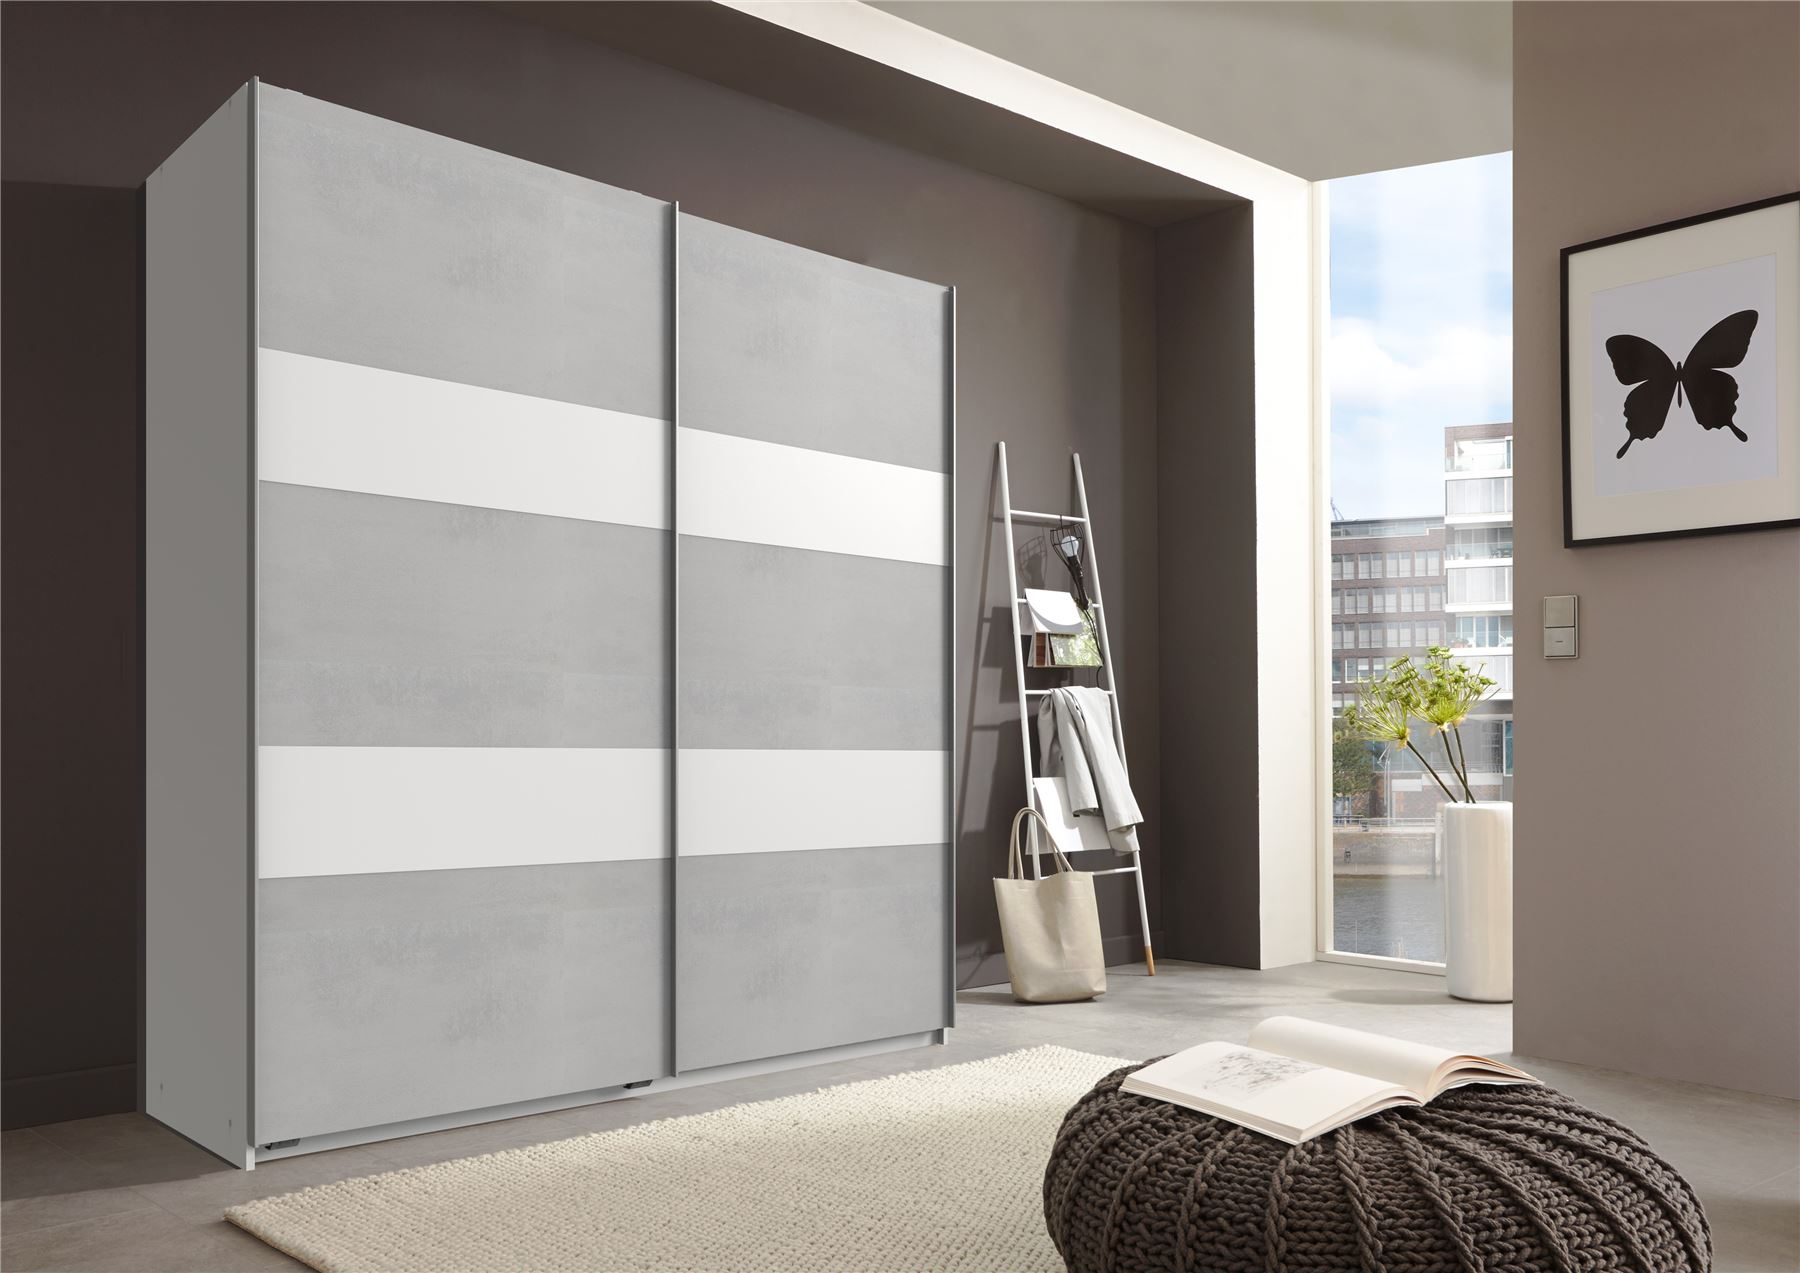 German Chess Concrete Grey & White 2 Door 180cm Sliding Slider Door Wardrobe